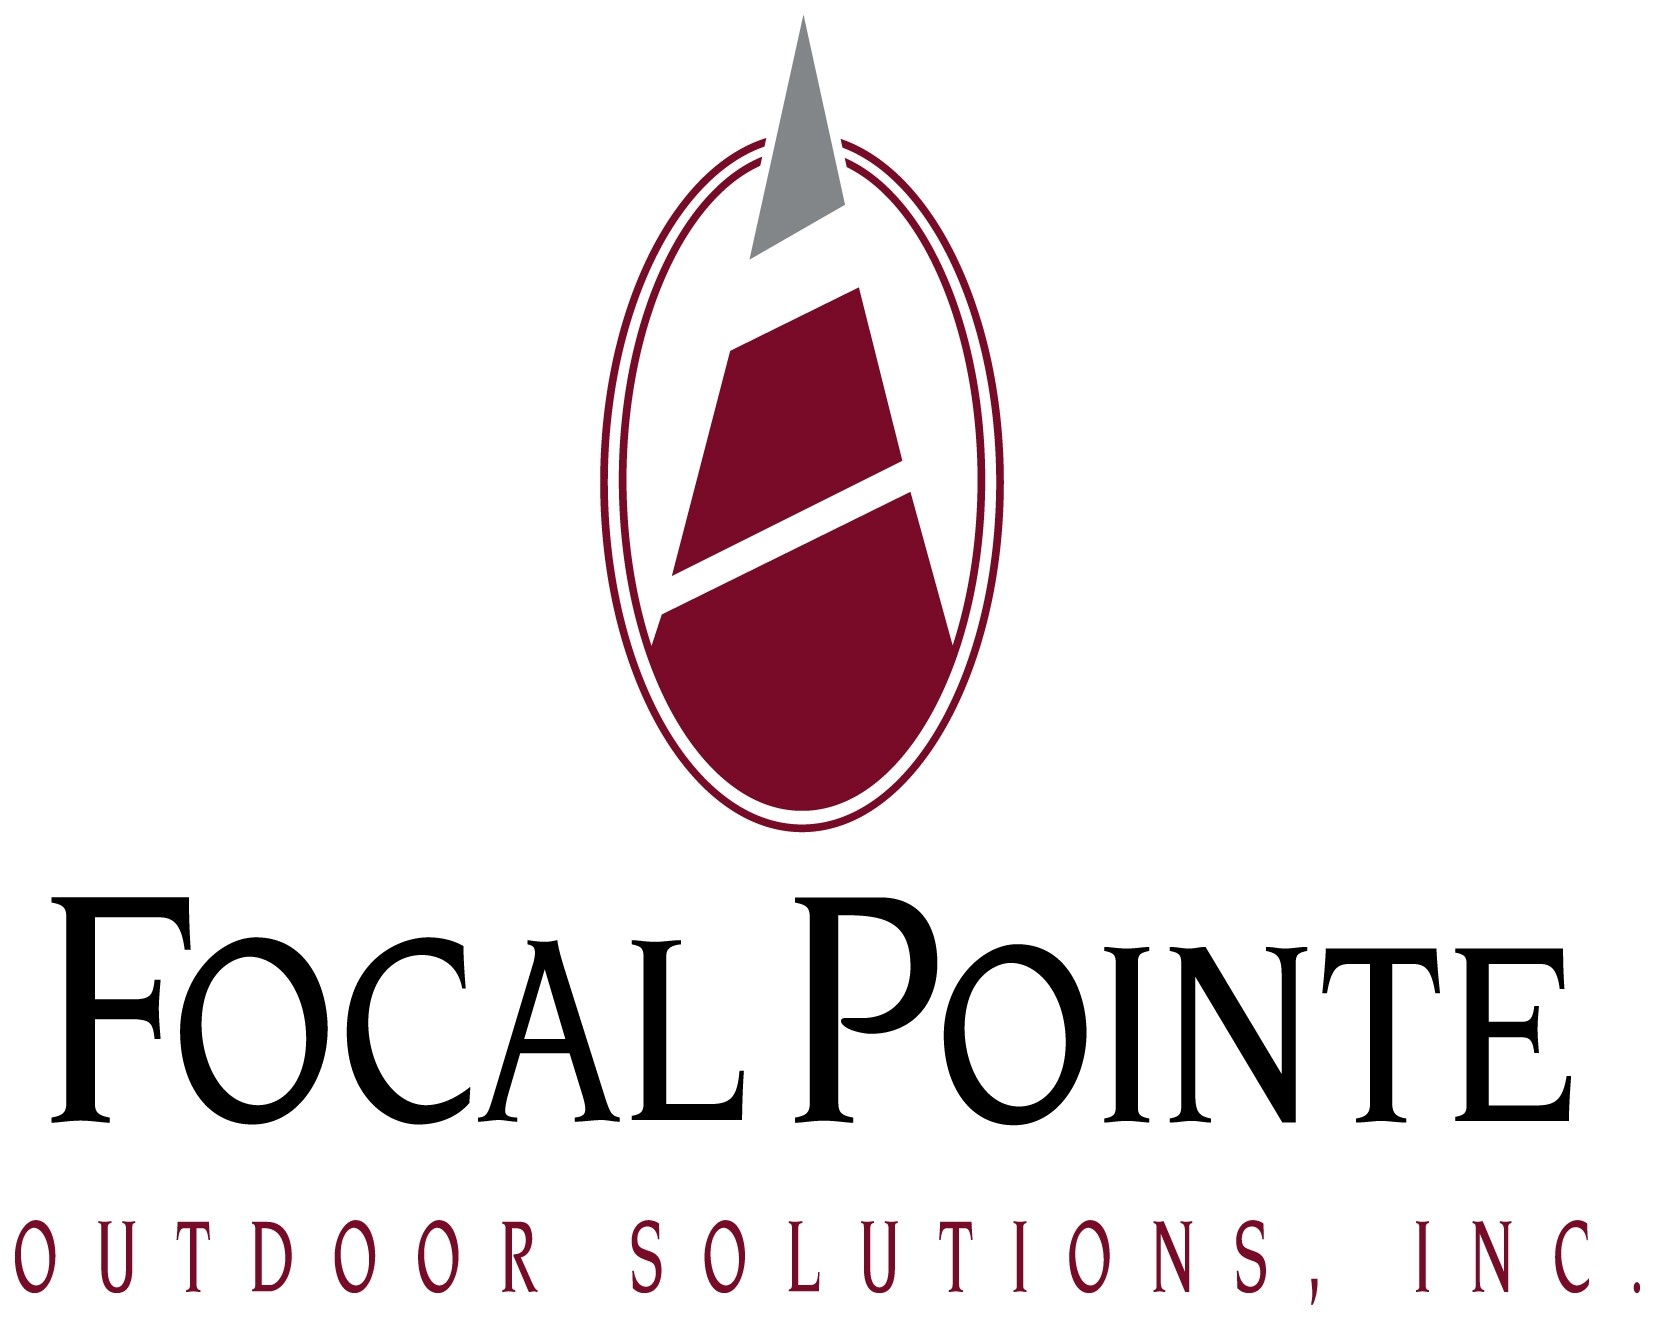 Focal Pointe Outdoor Solutions, Inc. Company Logo